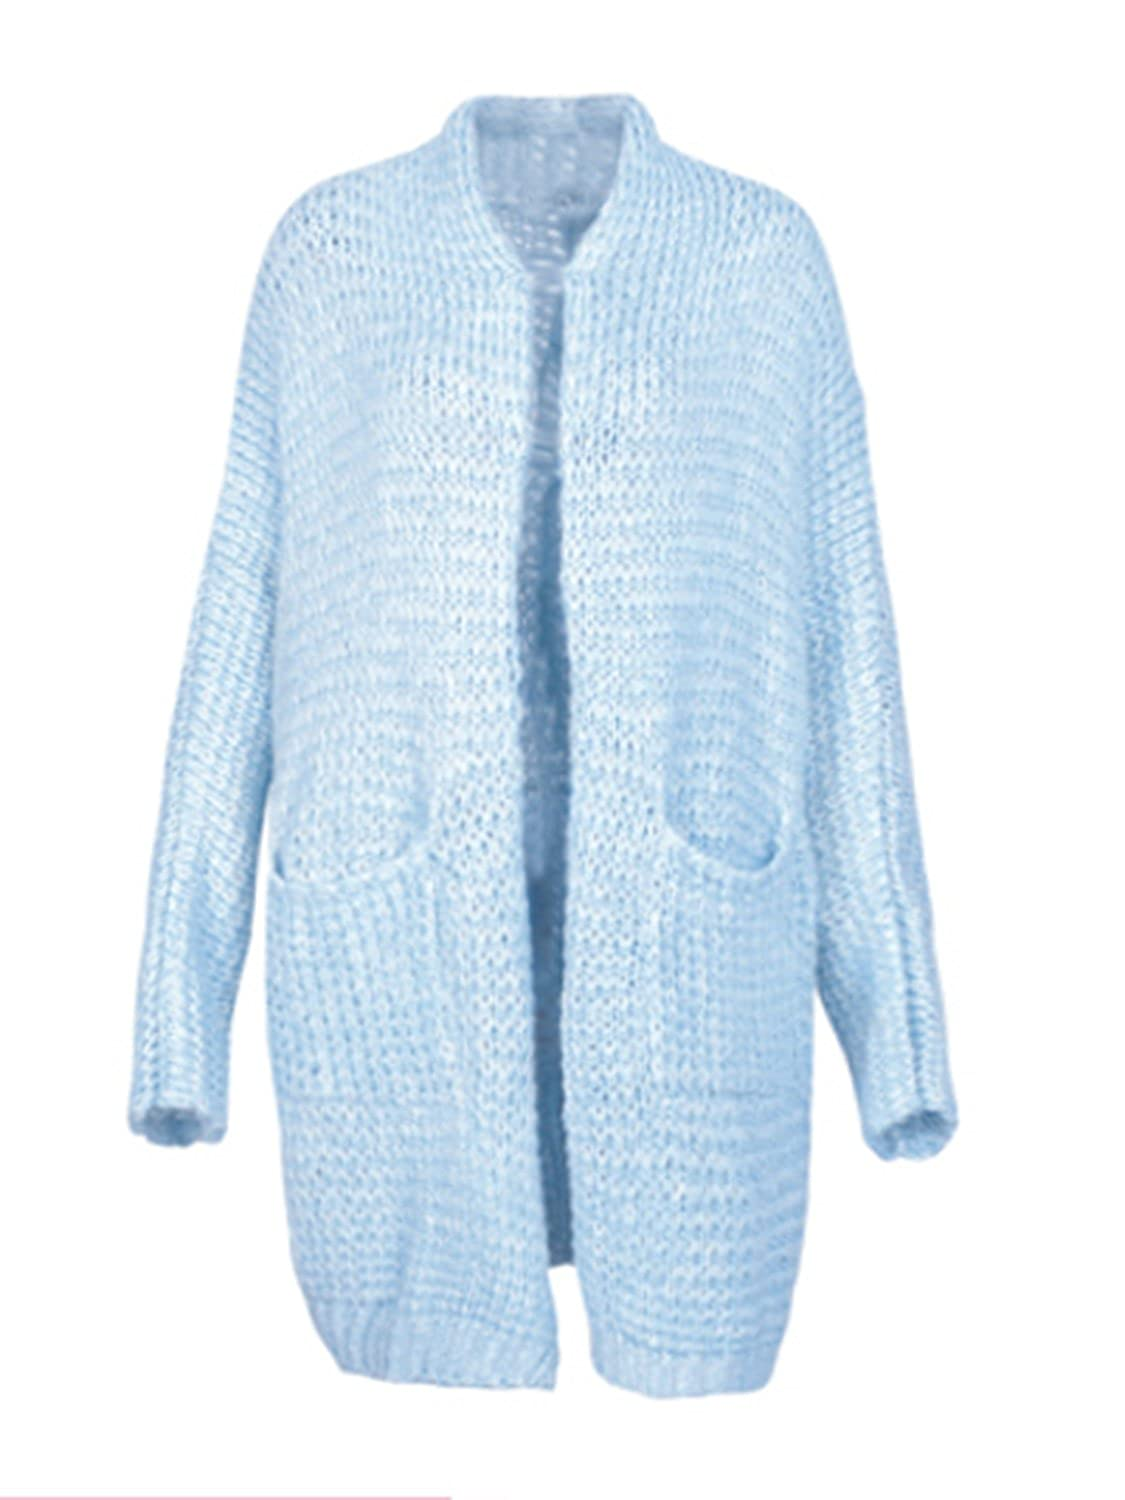 Glamaker Women's Fuzzy Open Front Cardigan Jacket Coat Loose Outwear with Pockets GAL01198